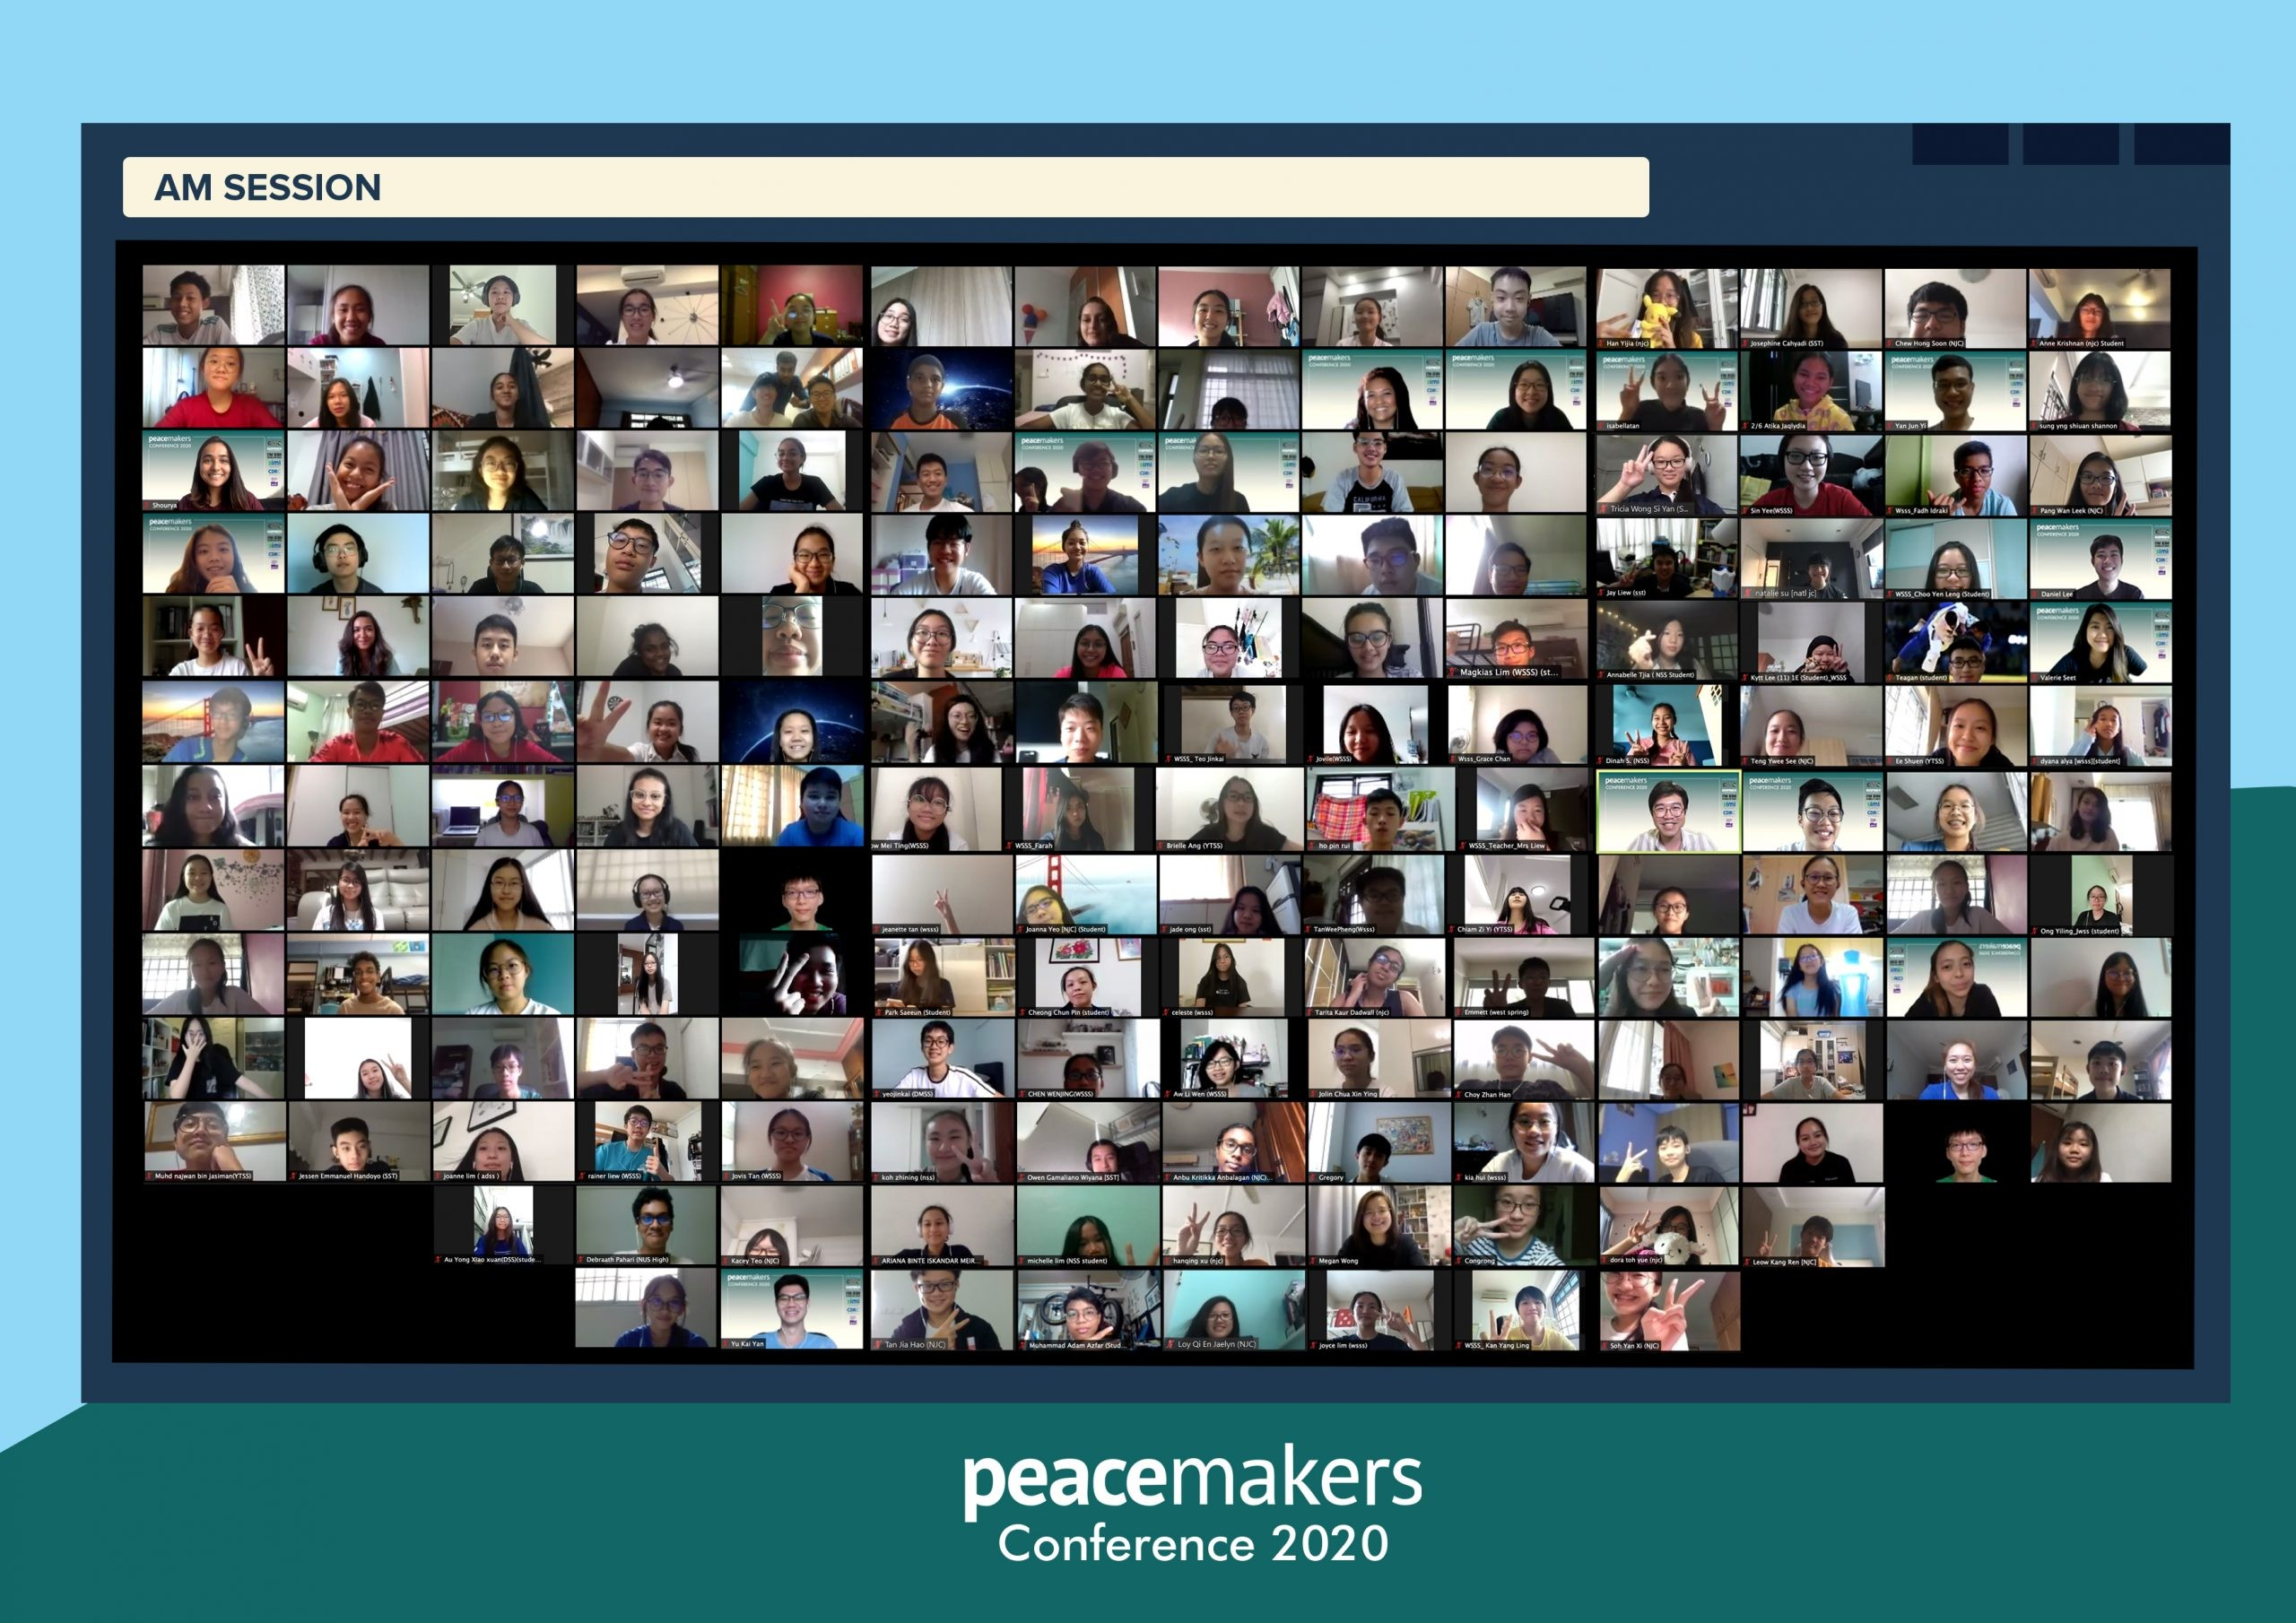 peacemakers am2